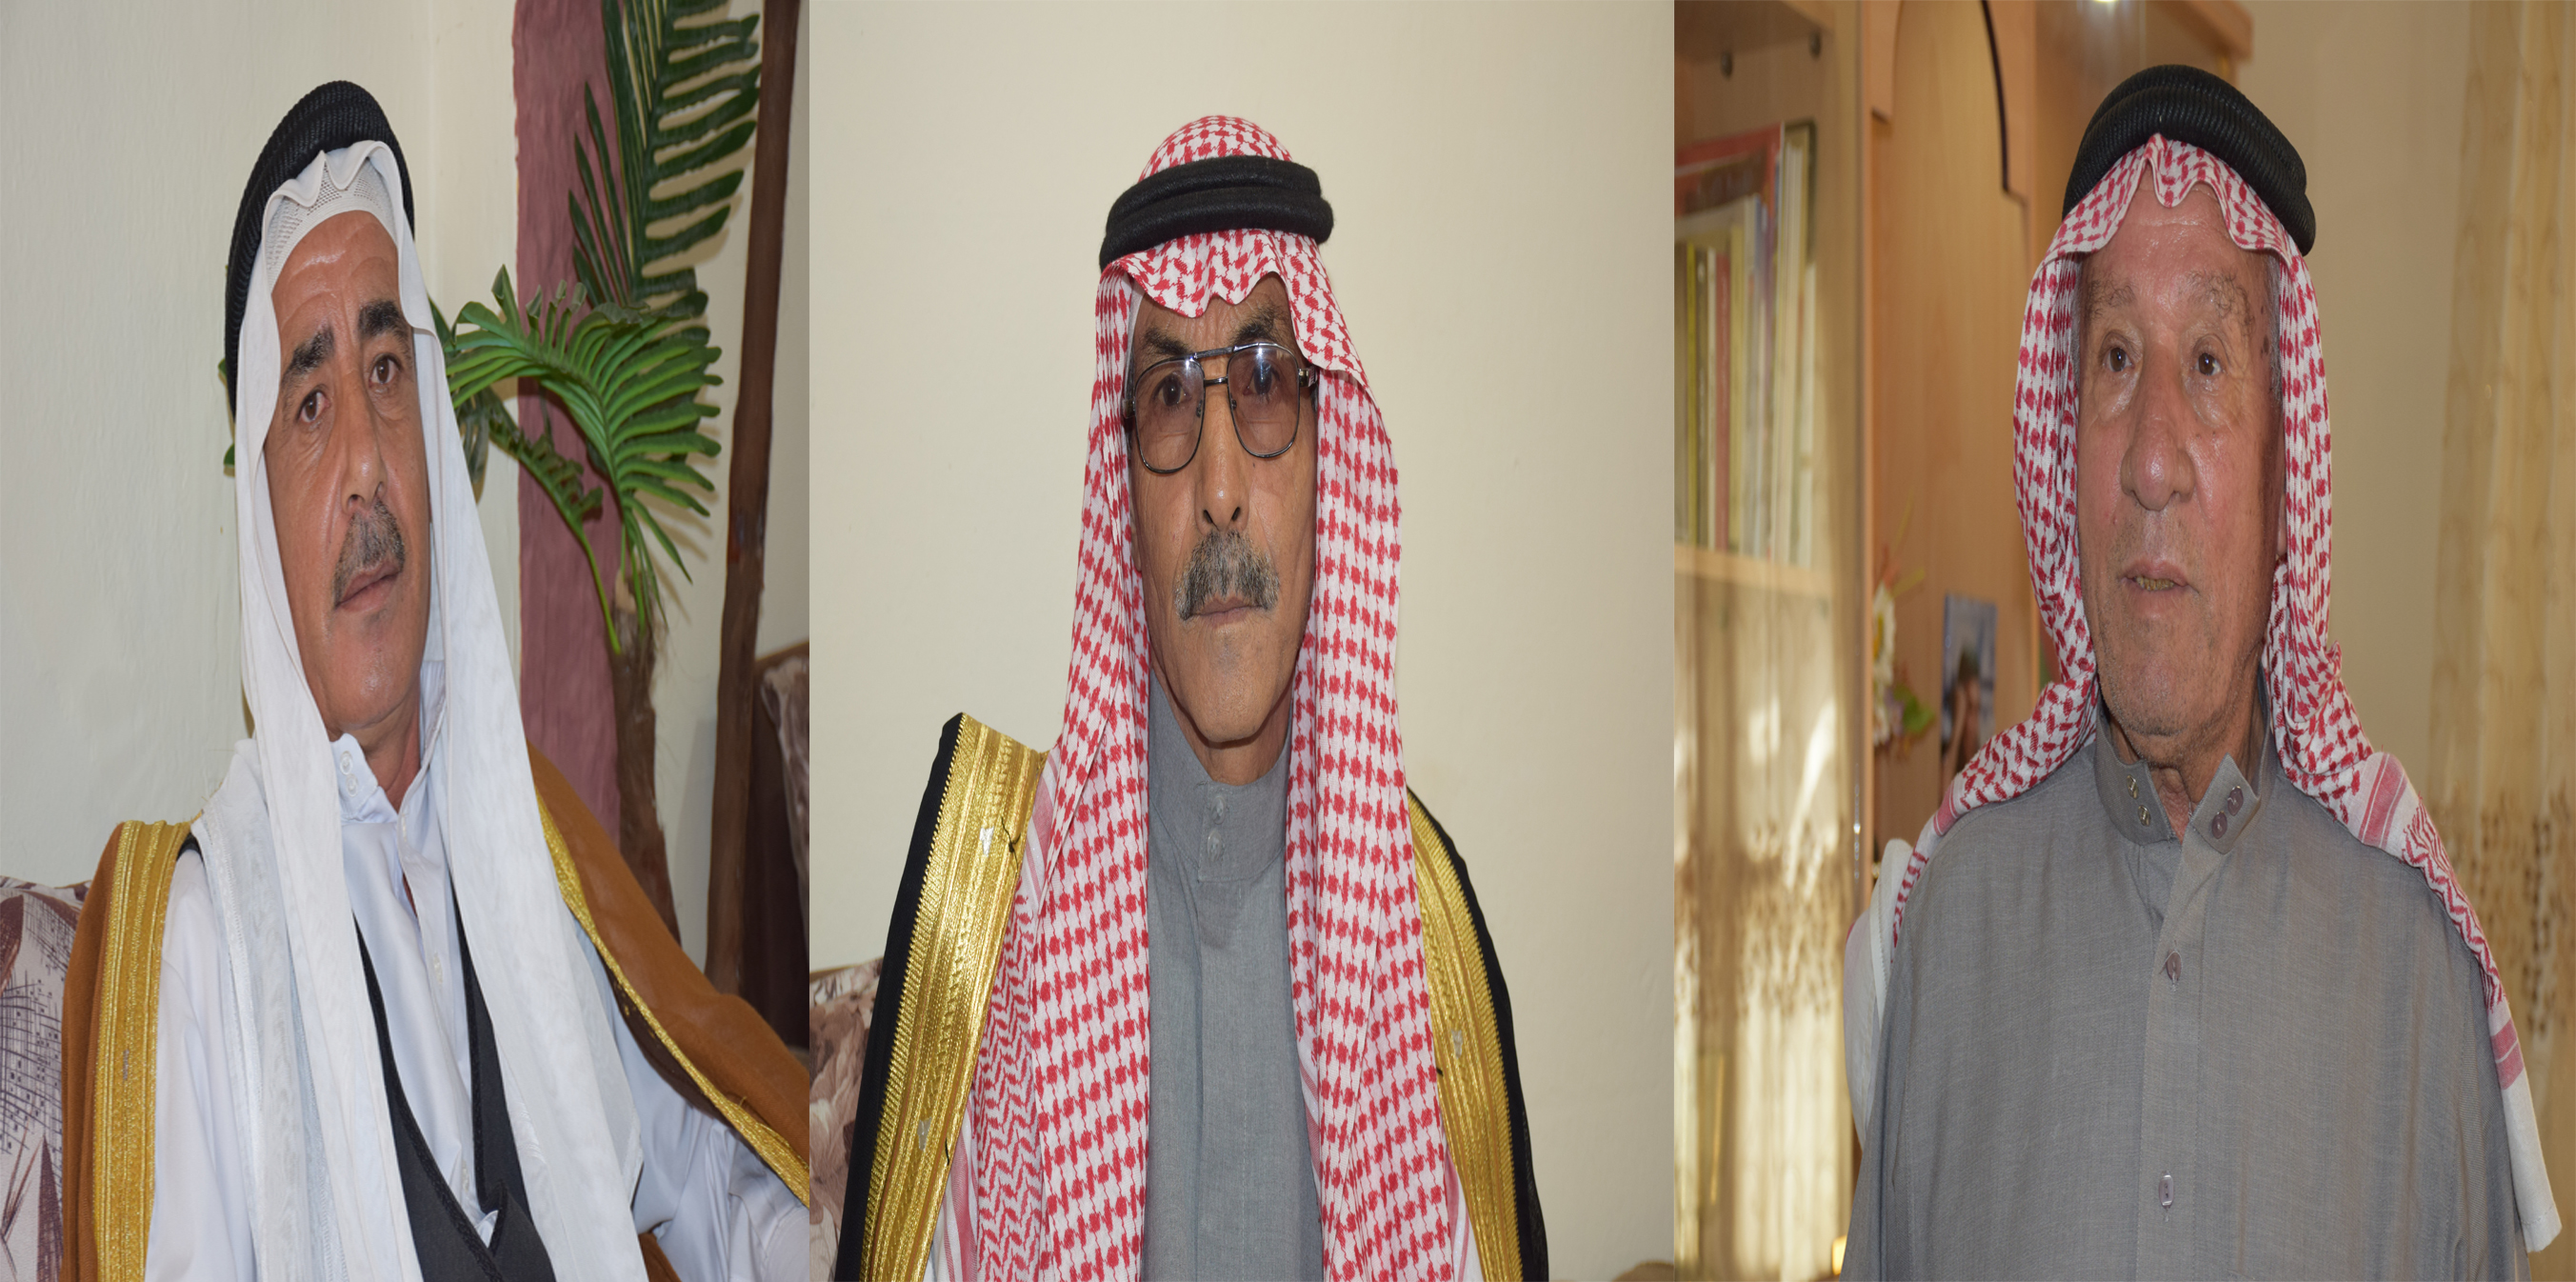 Elders: DAA project is only savior to Syrian crisis